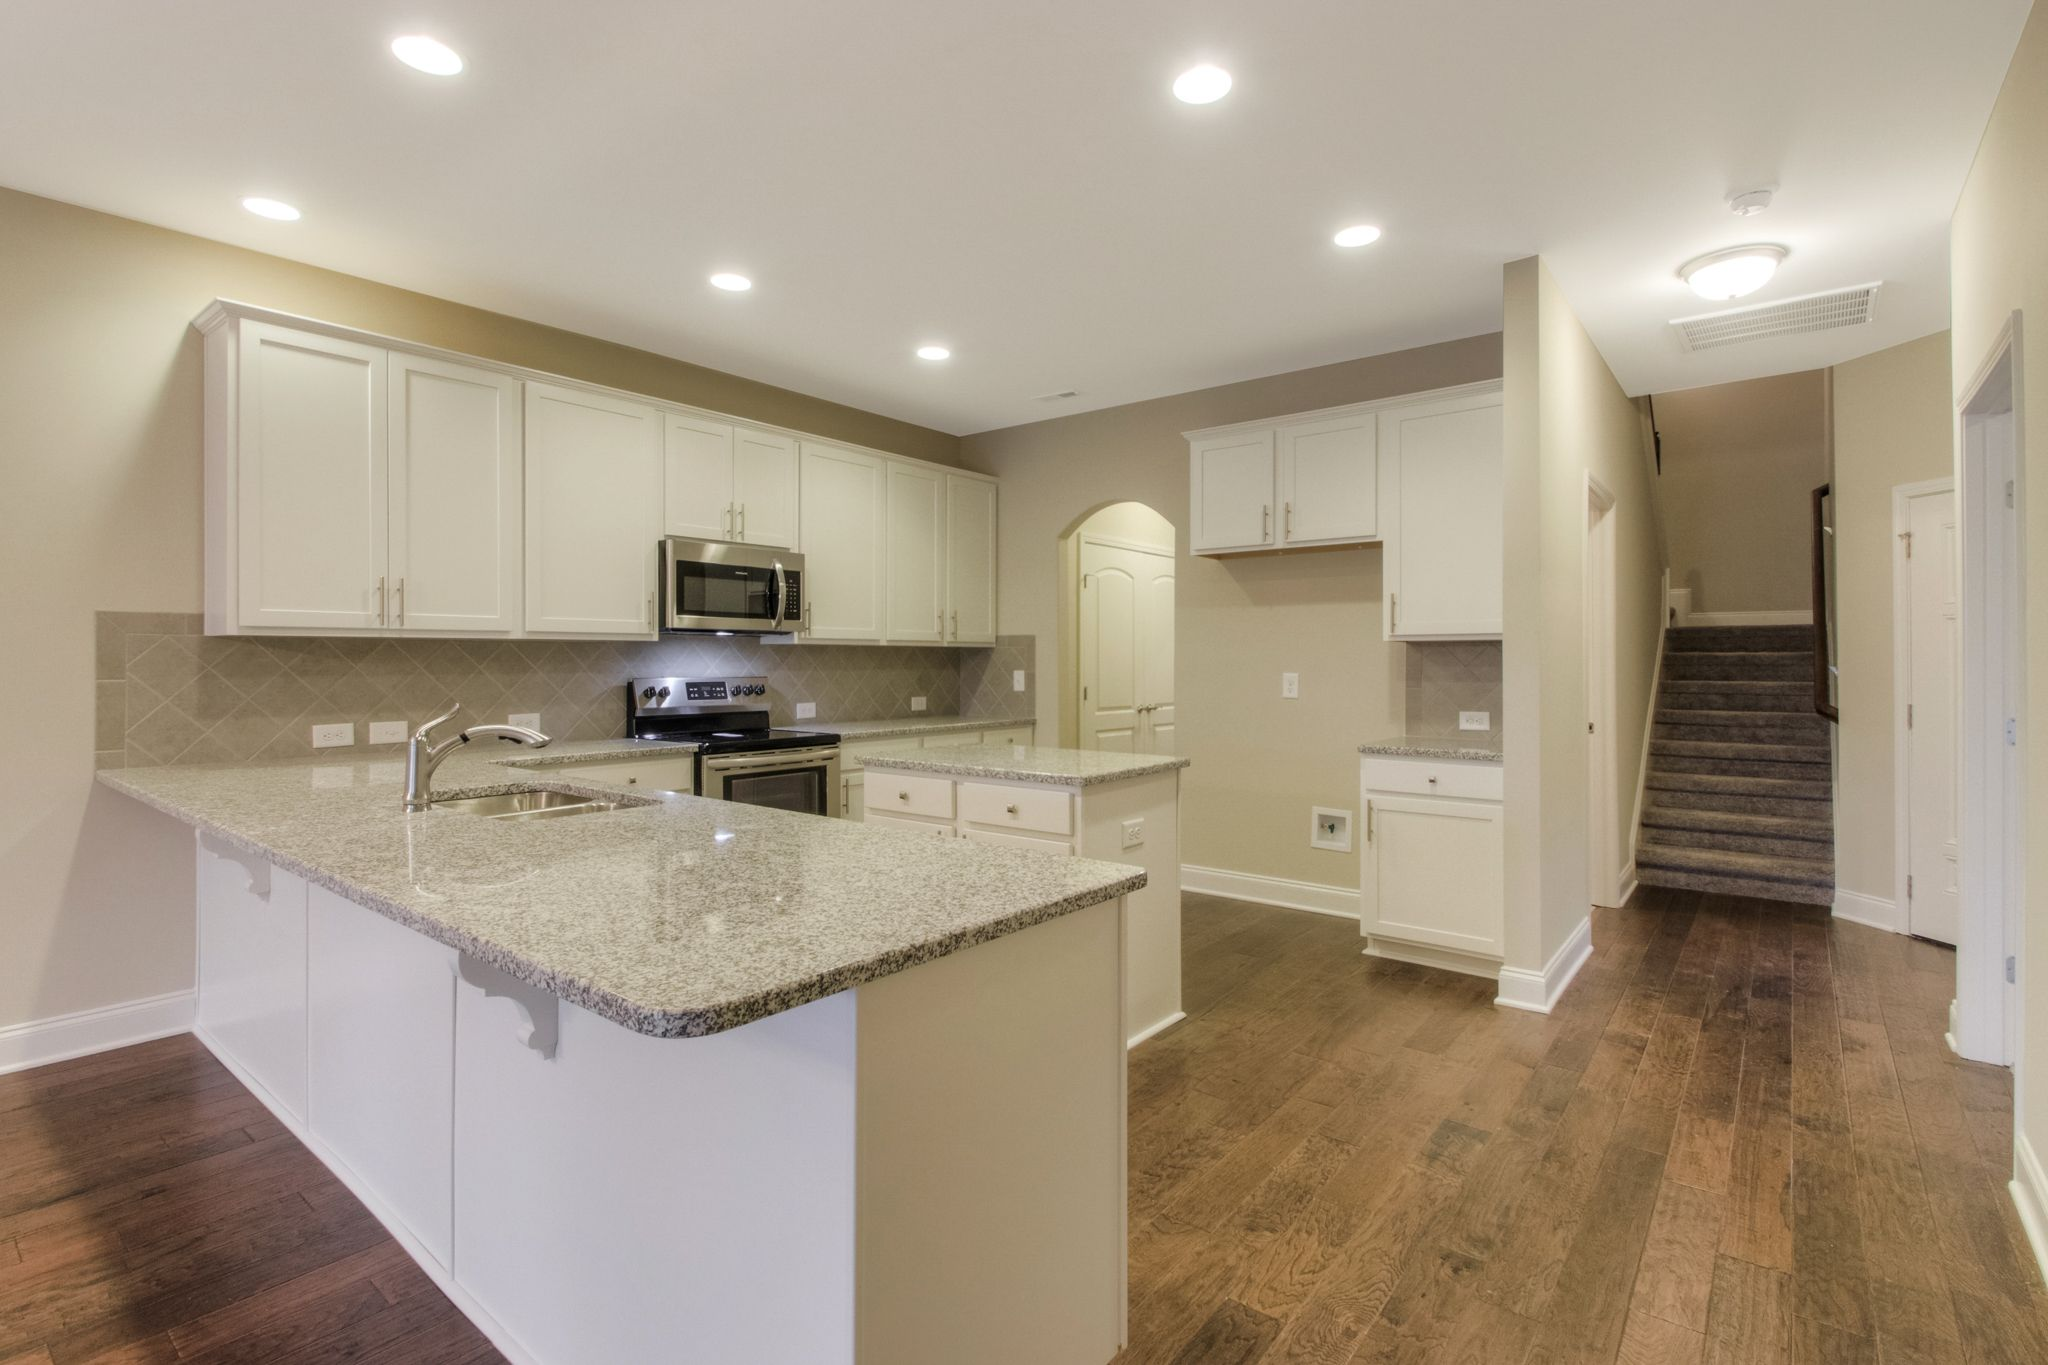 Kitchen featured in The Ashleigh Courtyard Cottage By Goodall Homes in Knoxville, TN